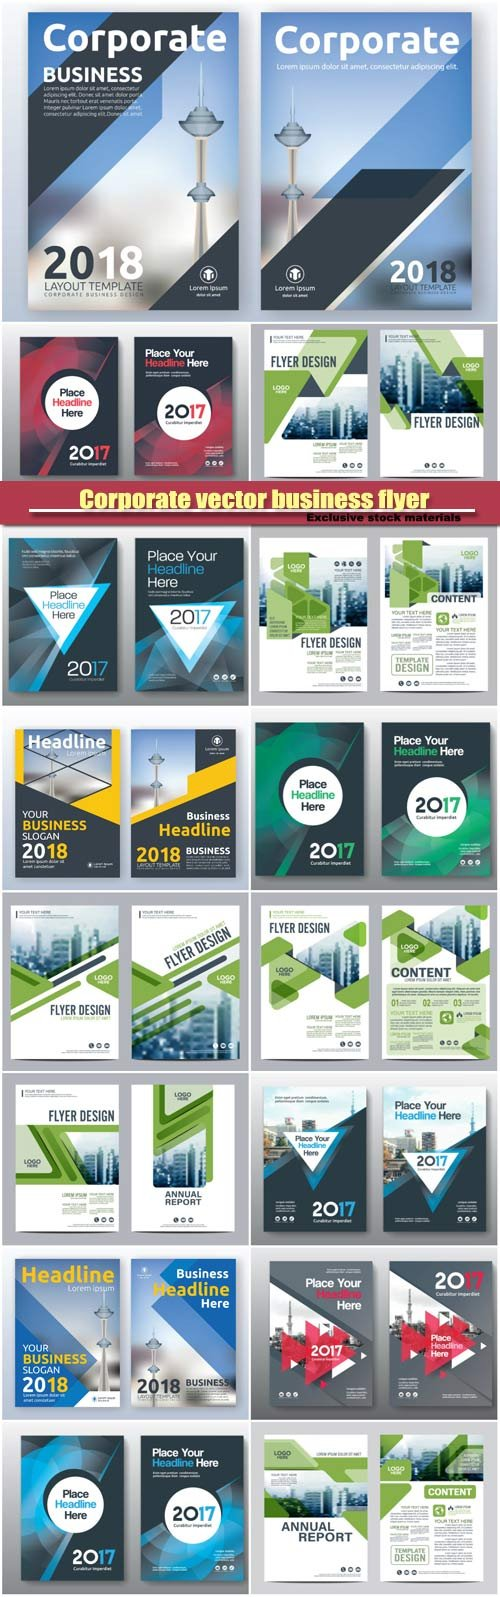 Corporate vector business flyer layout templates design, brochure, book cover